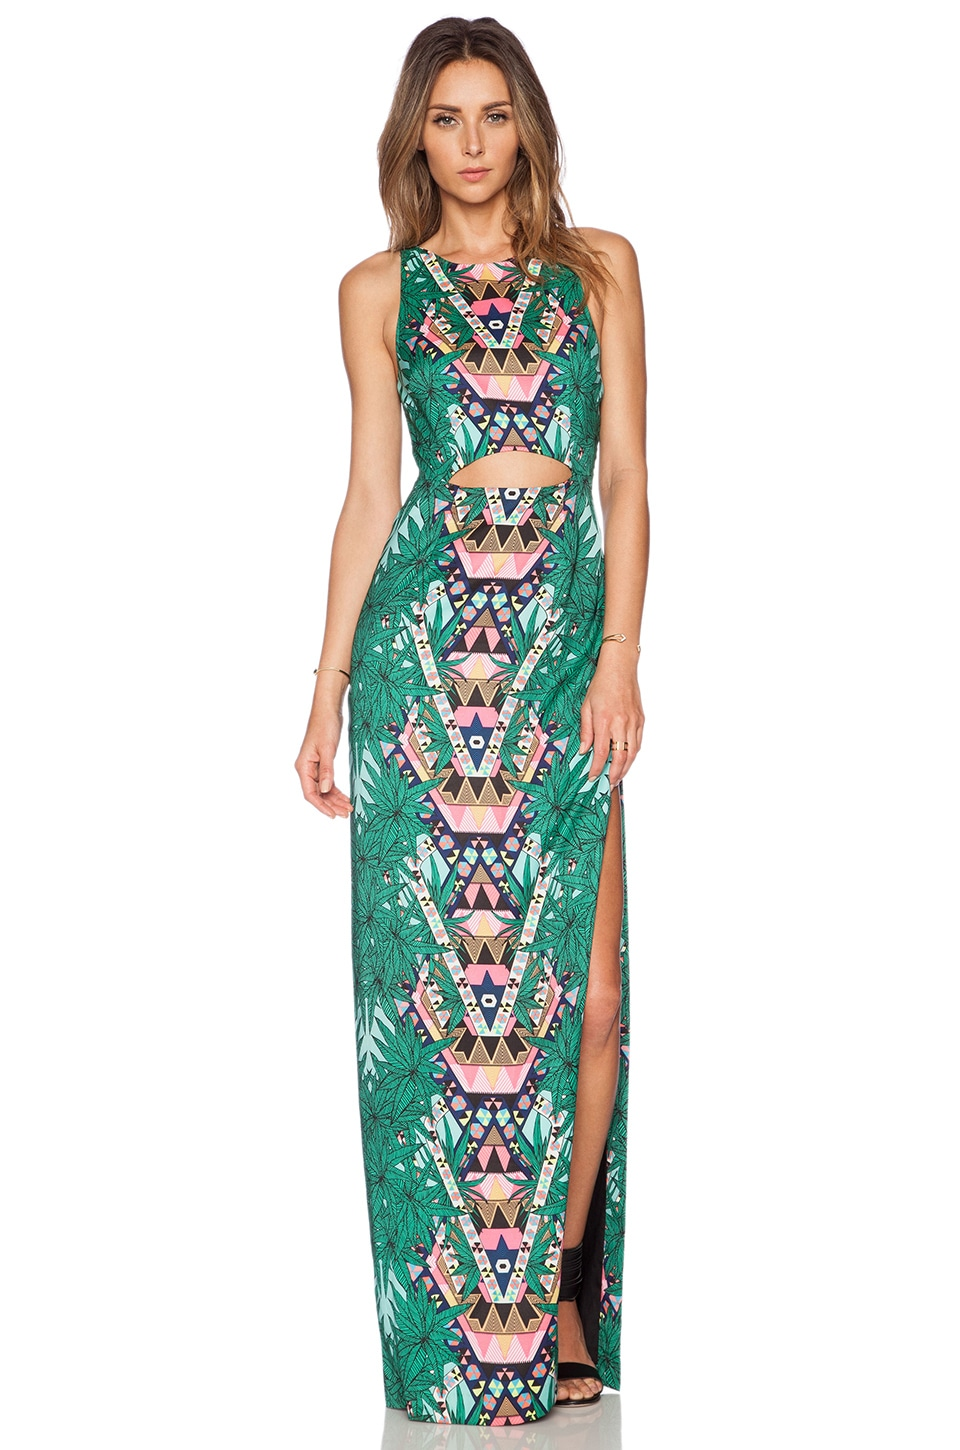 Mara Hoffman Cut Out Column Maxi Dress in Maristar Green | REVOLVE